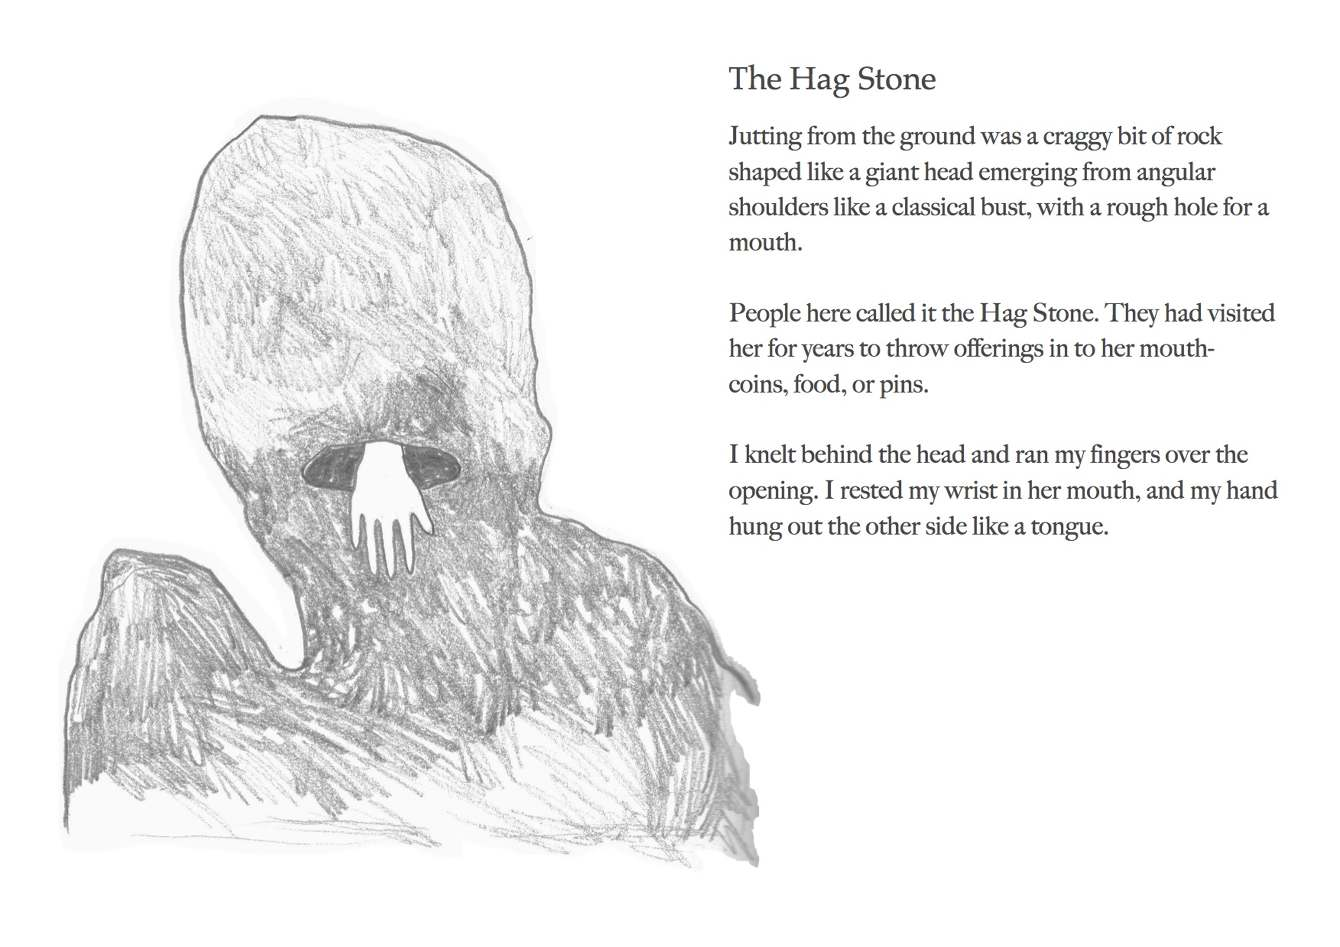 The Hag Stone Flora Hunt If you had backed hag stone throughout its career. the hag stone flora hunt